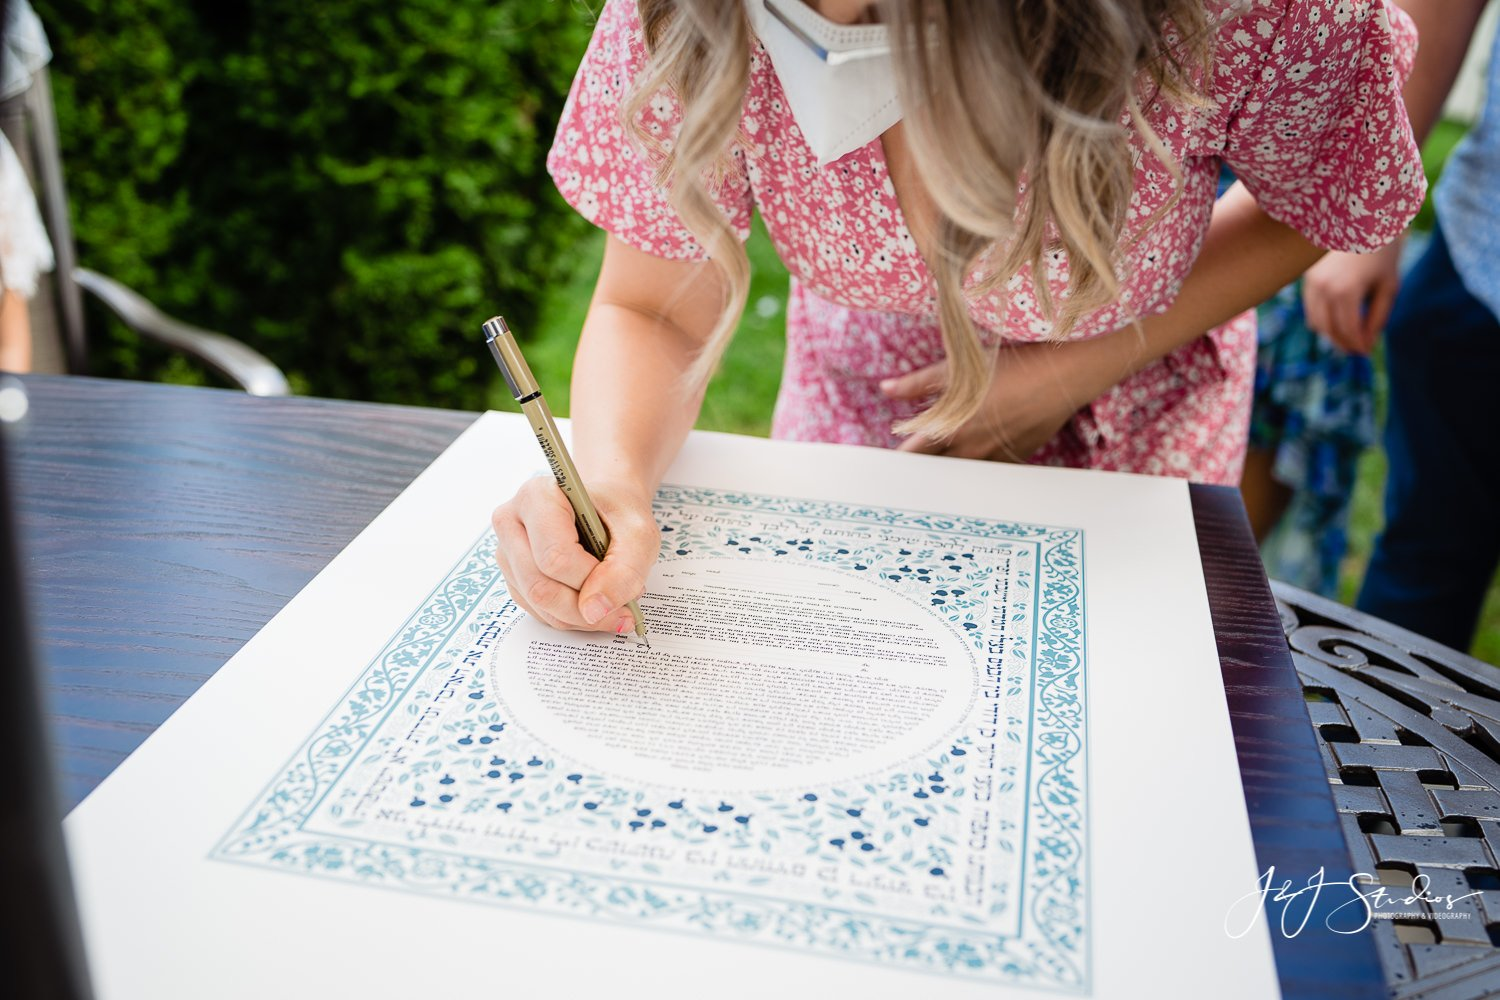 witness signs the ketubah in hebrew